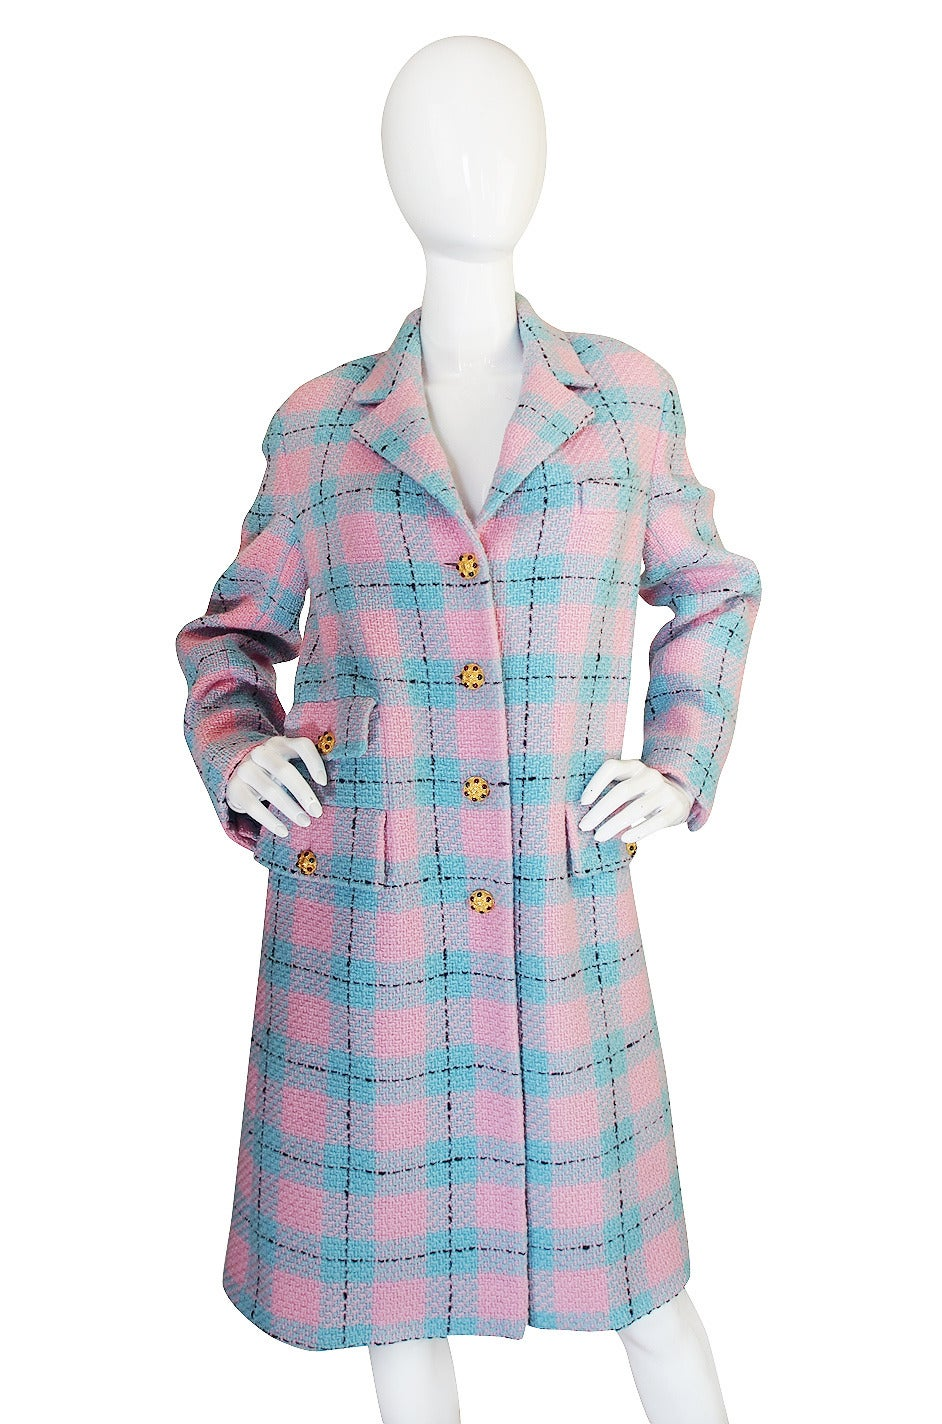 96A Pastel Runway Chanel Coat w Cabochon Buttons 3